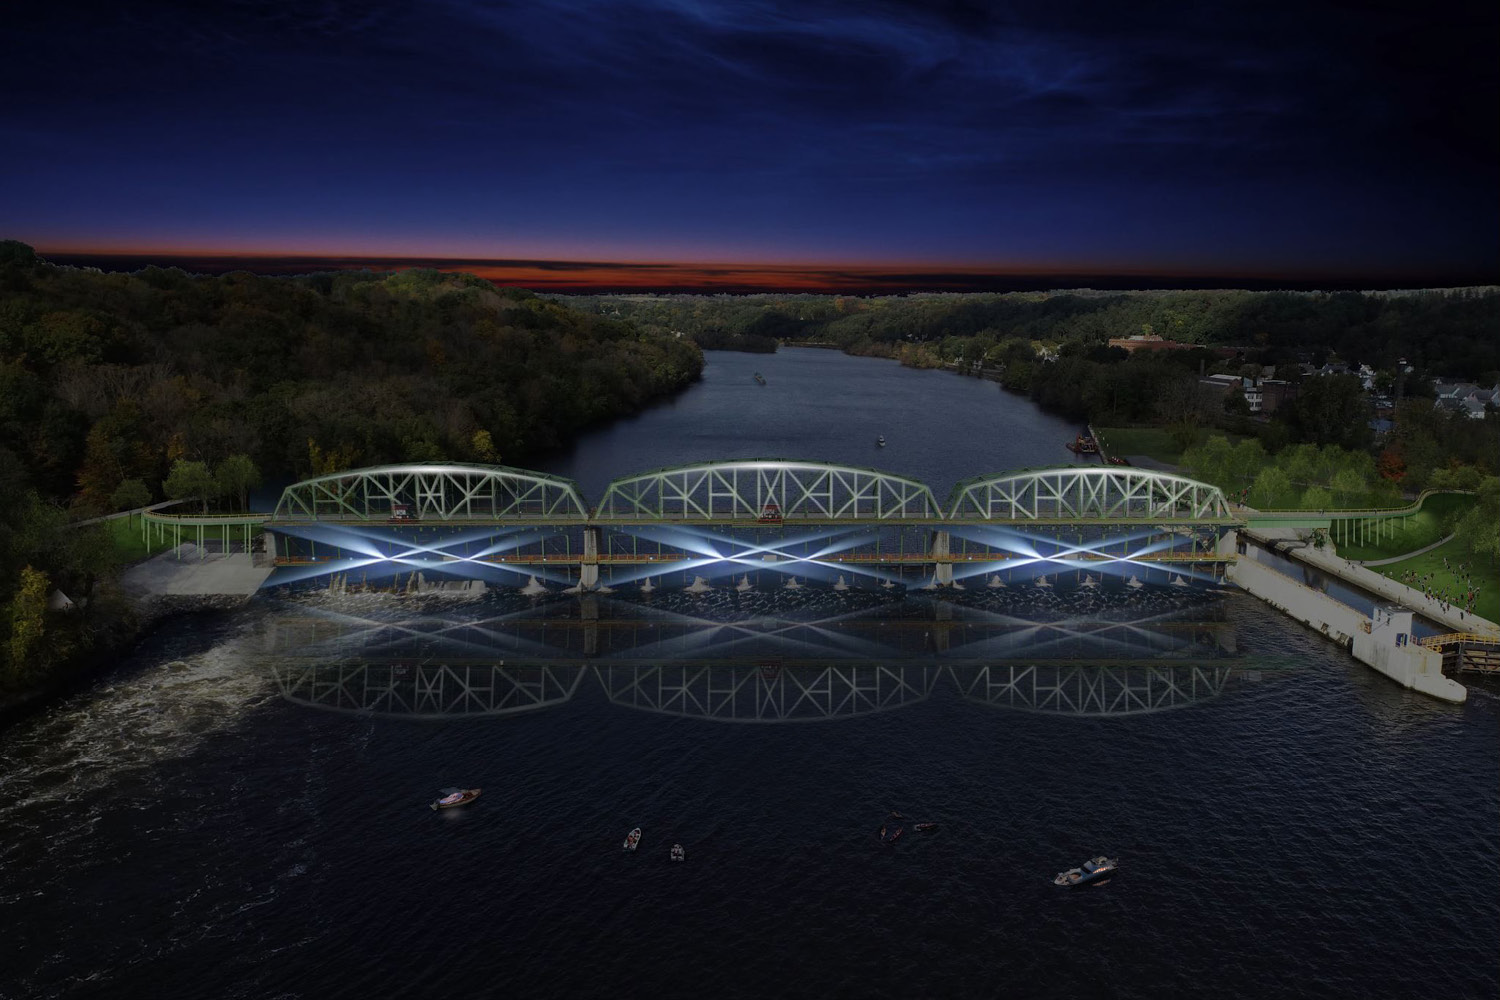 Reimagining the Erie Canal